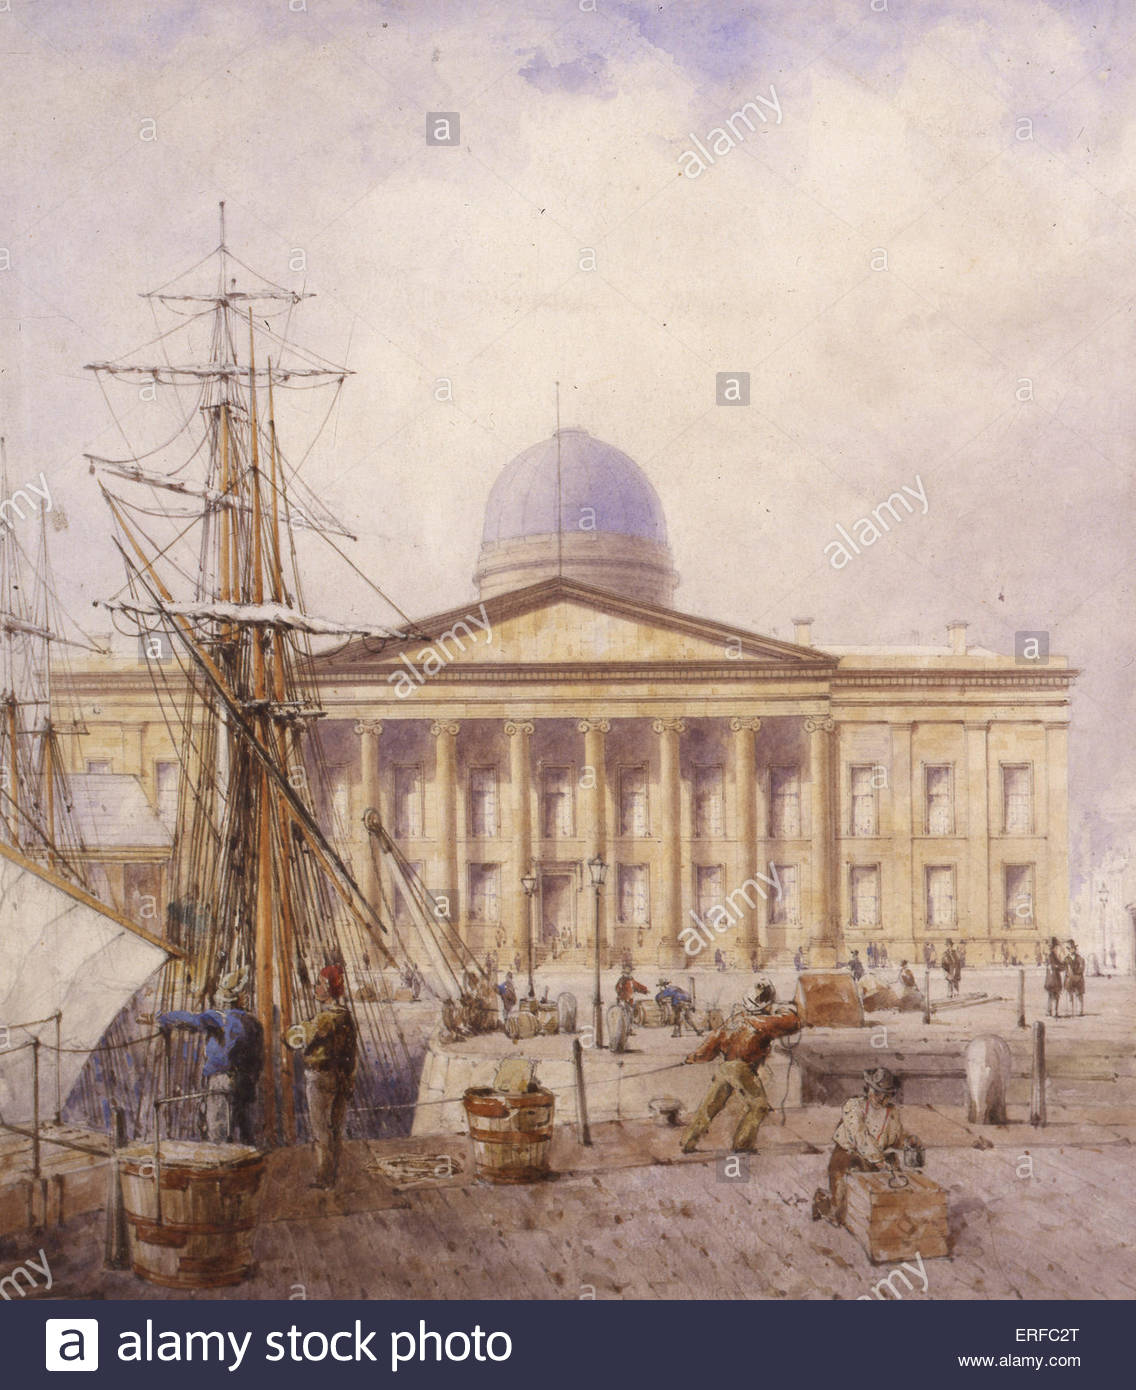 Liverpool's Fifth Custom House and corner of Canning Dock, 1861, by W G Herdman. Courtesy of Liverpool City - Stock Image